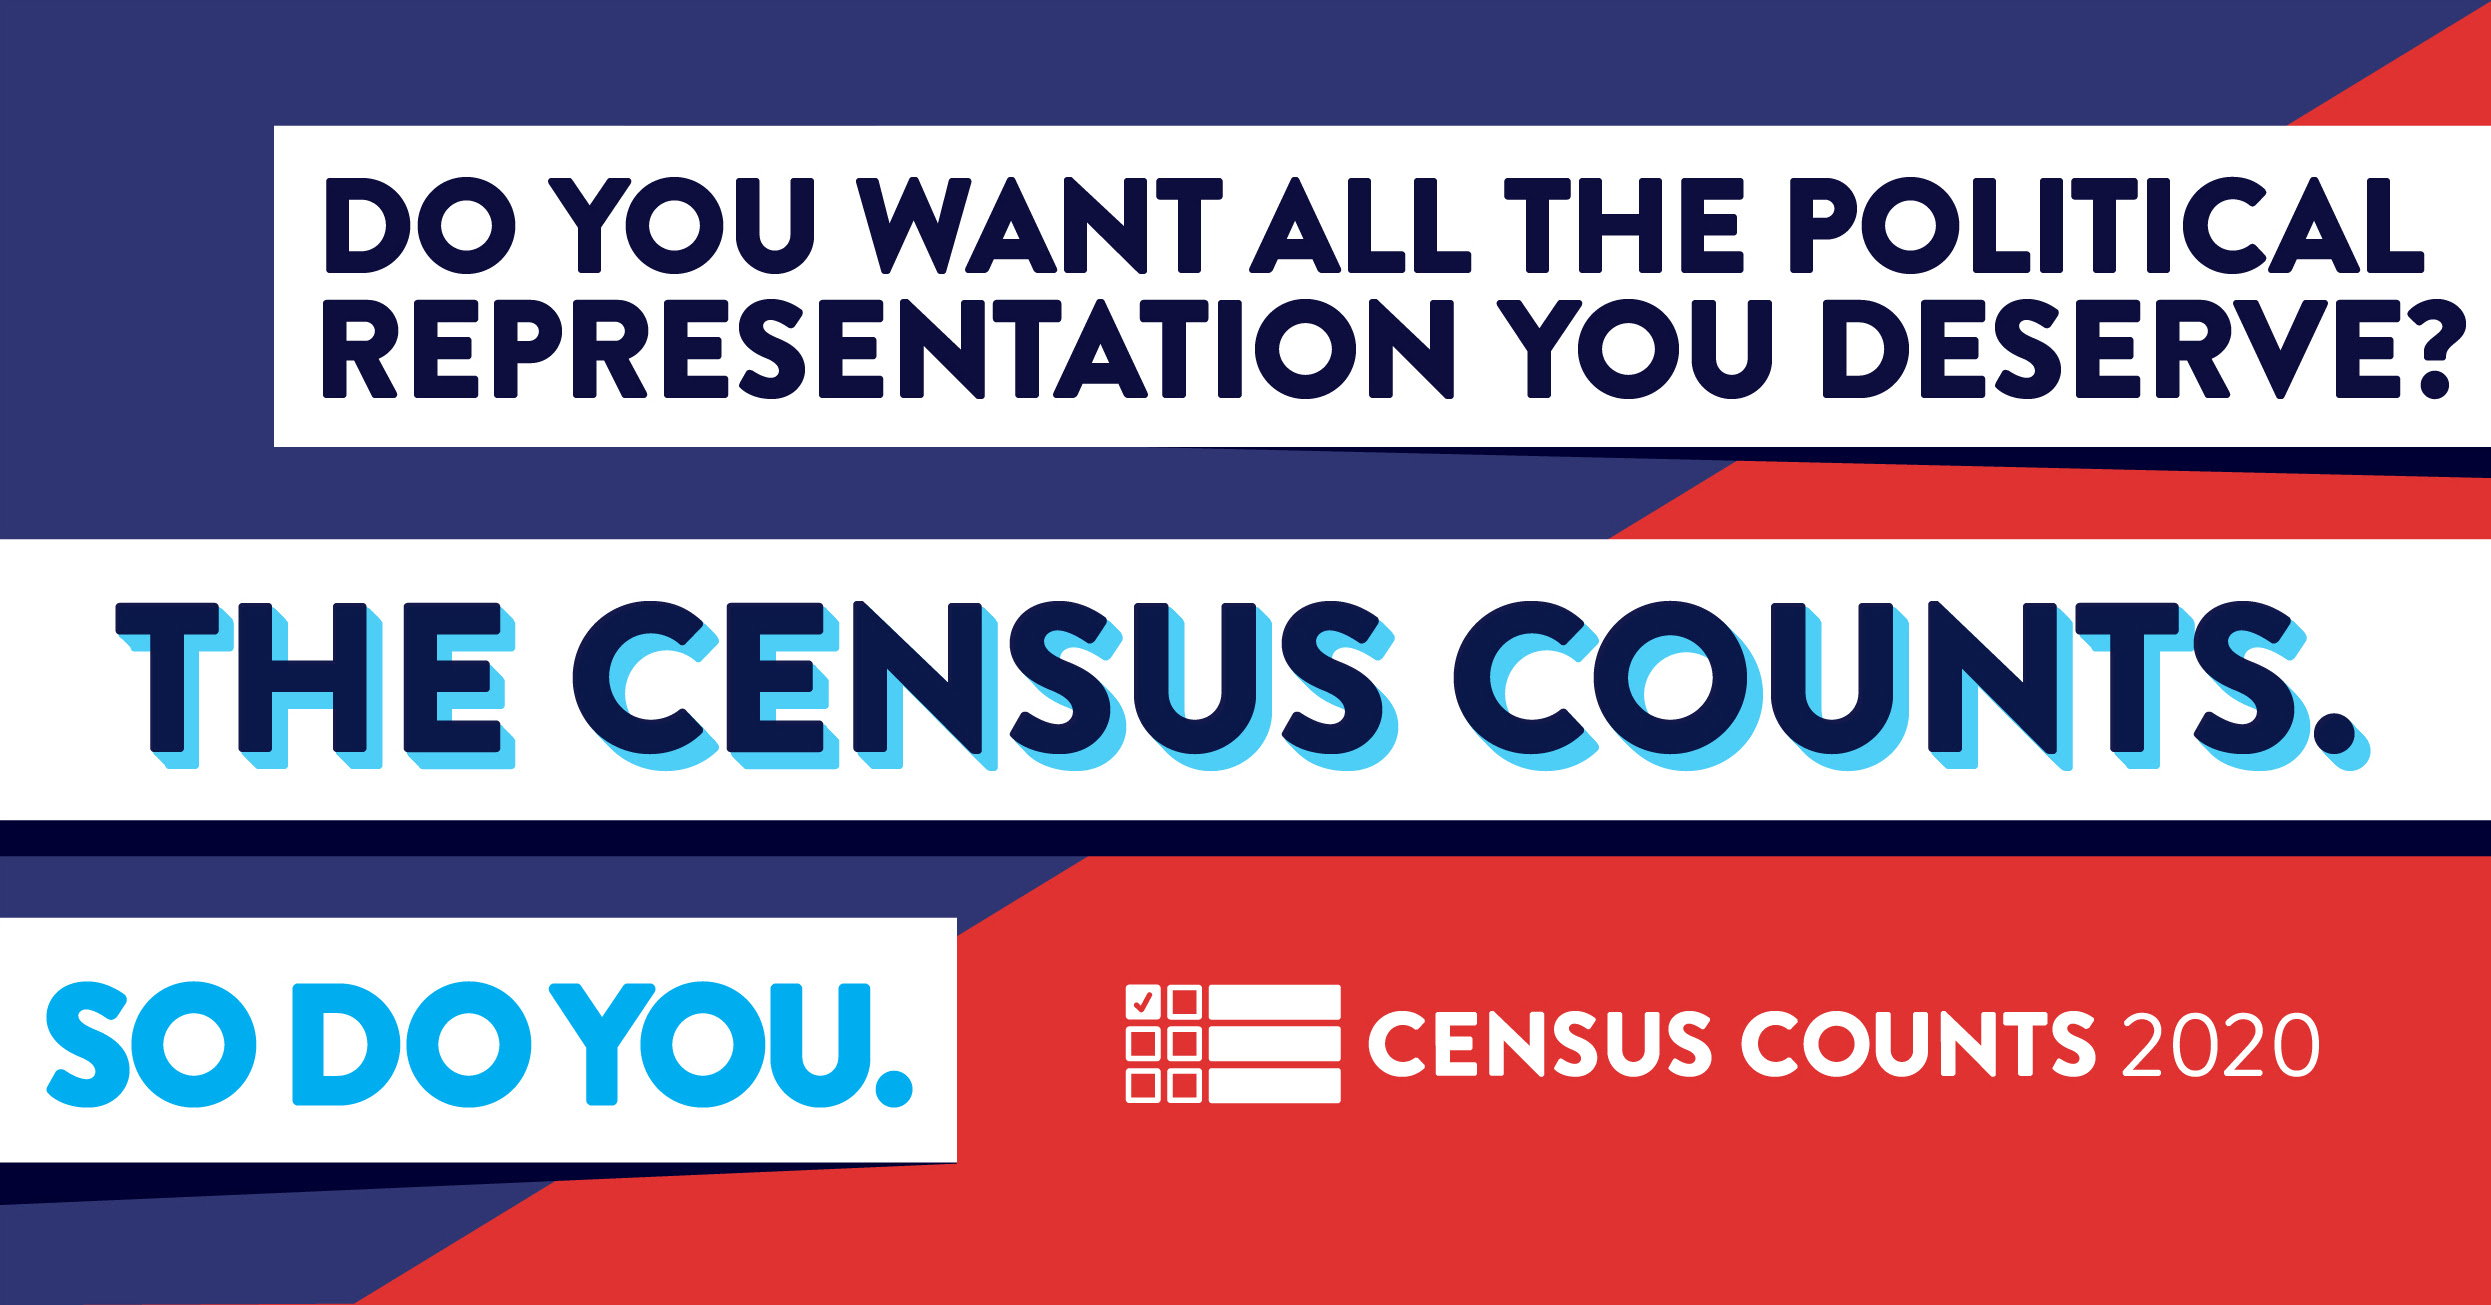 Census Counts